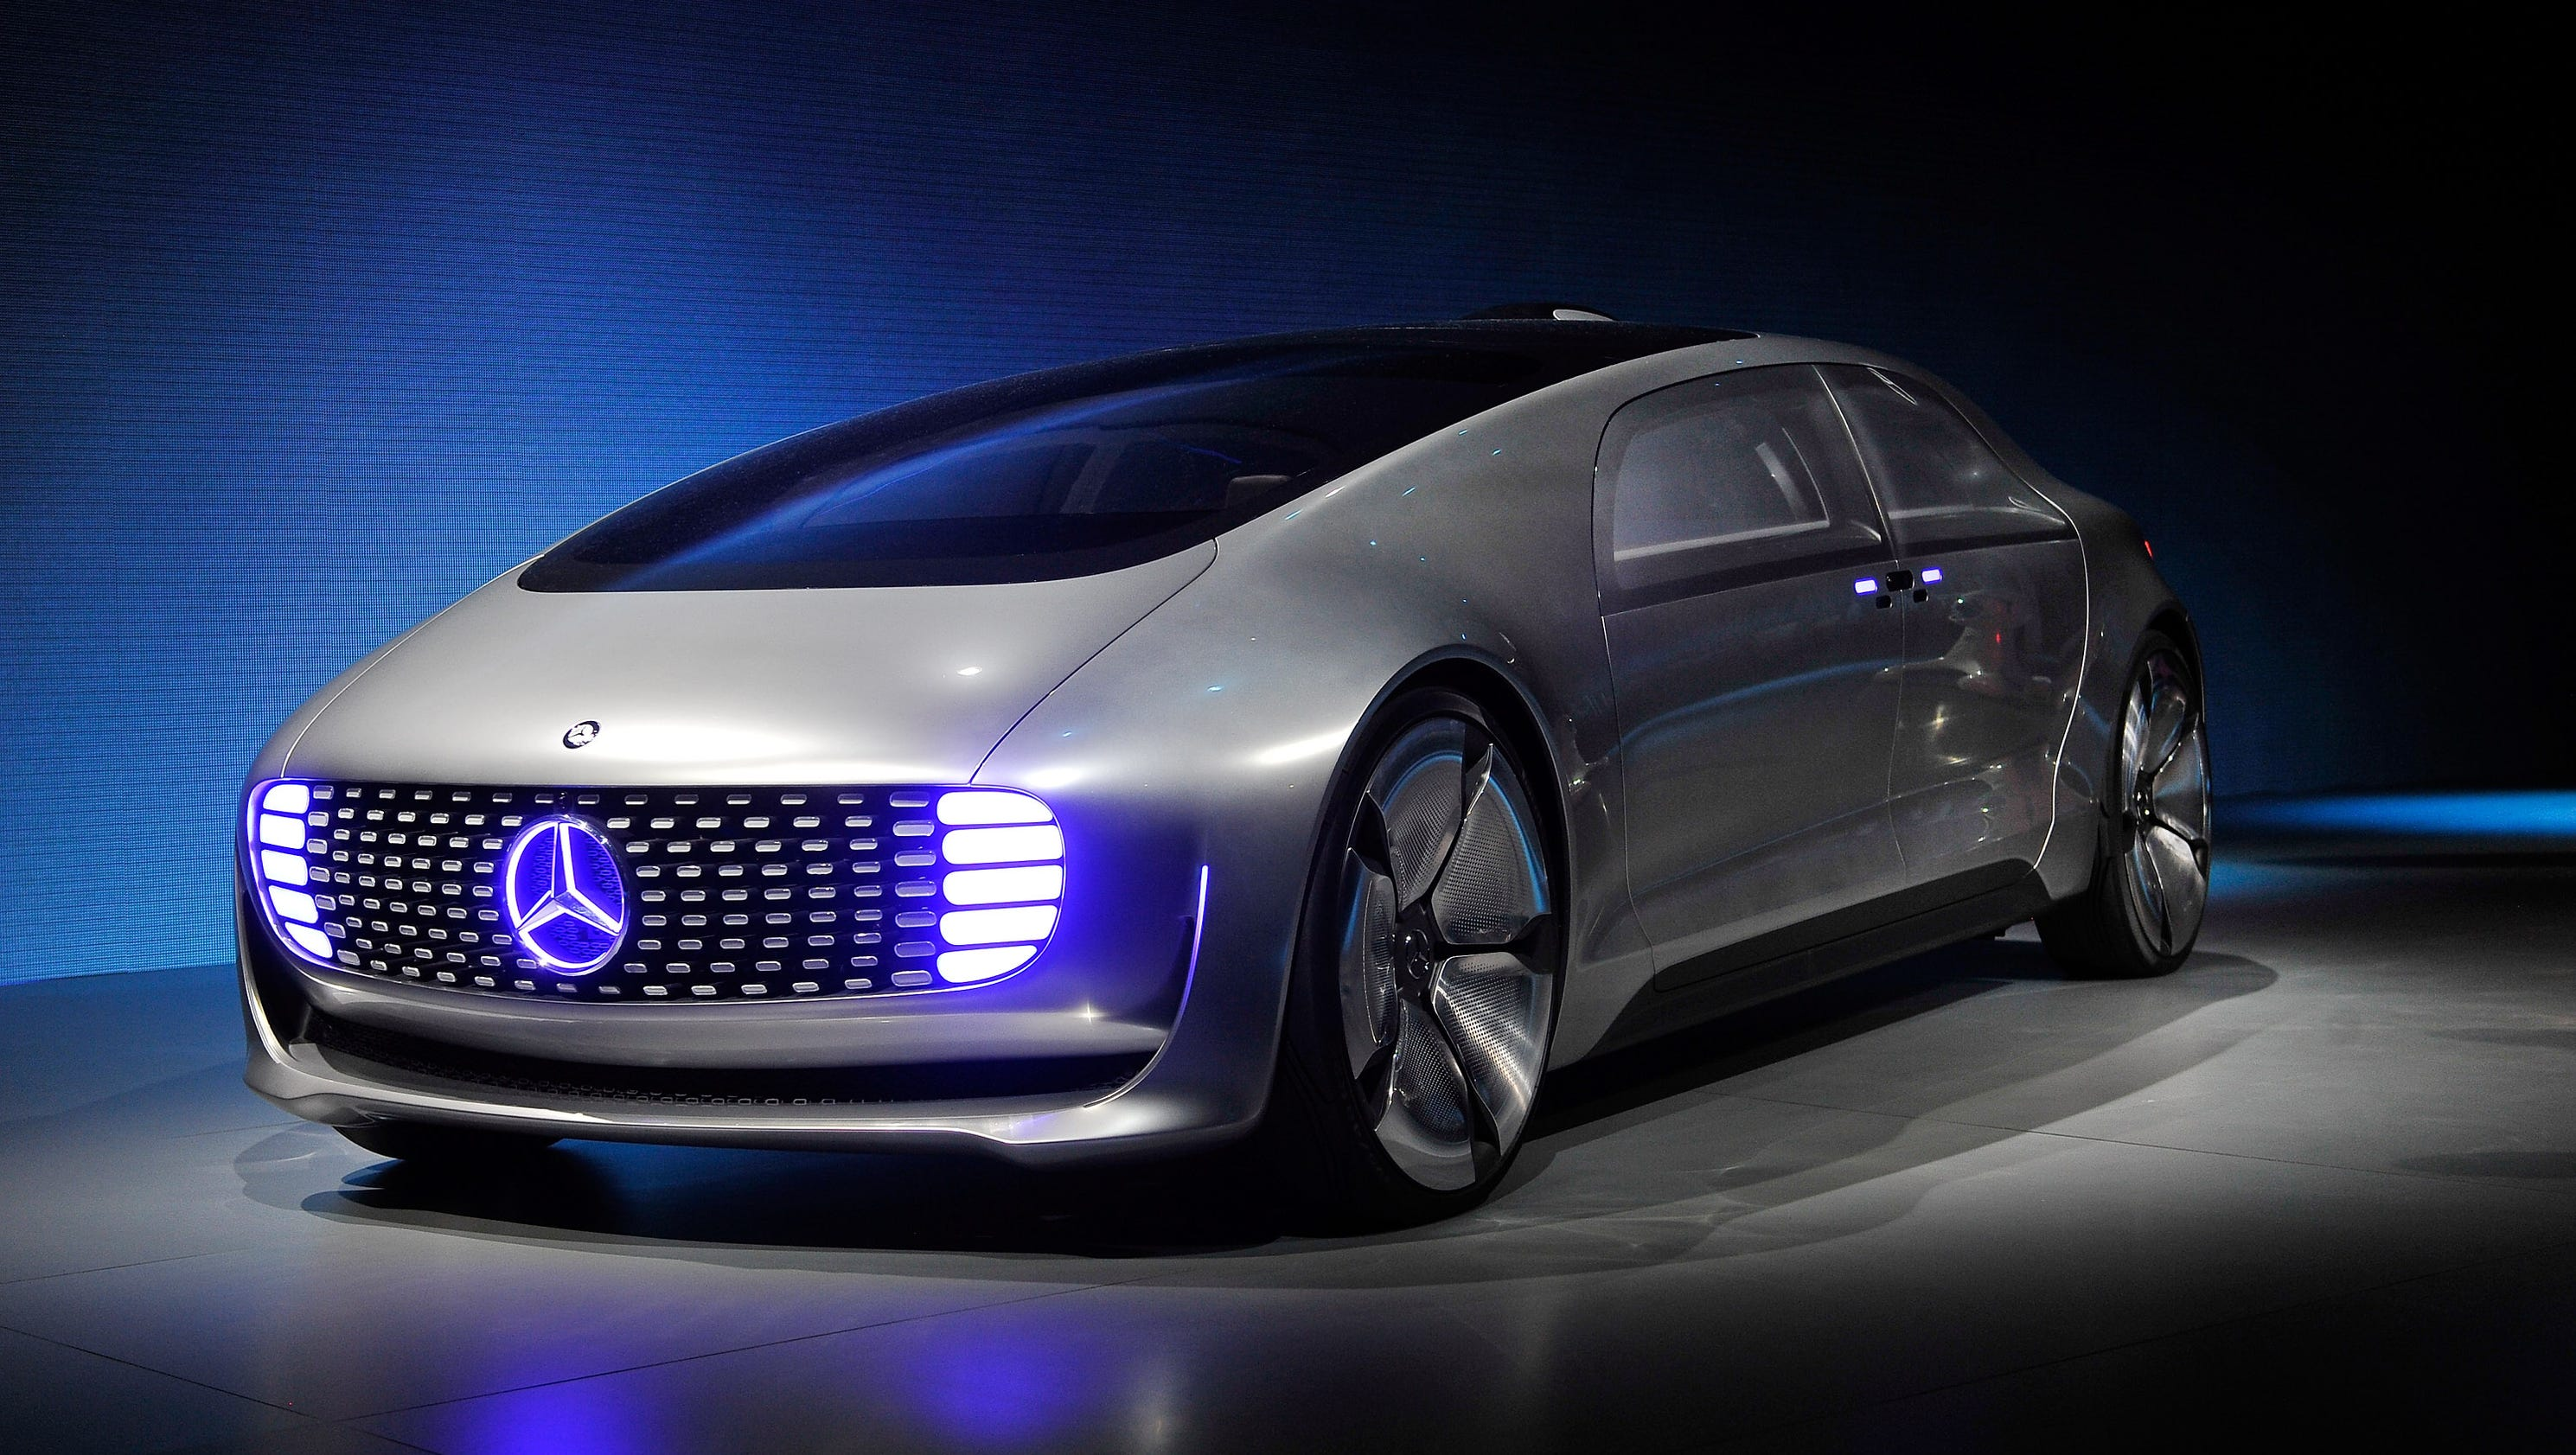 Mercedes benz unveils futuristic car at ces for Mercedes benz car picture gallery